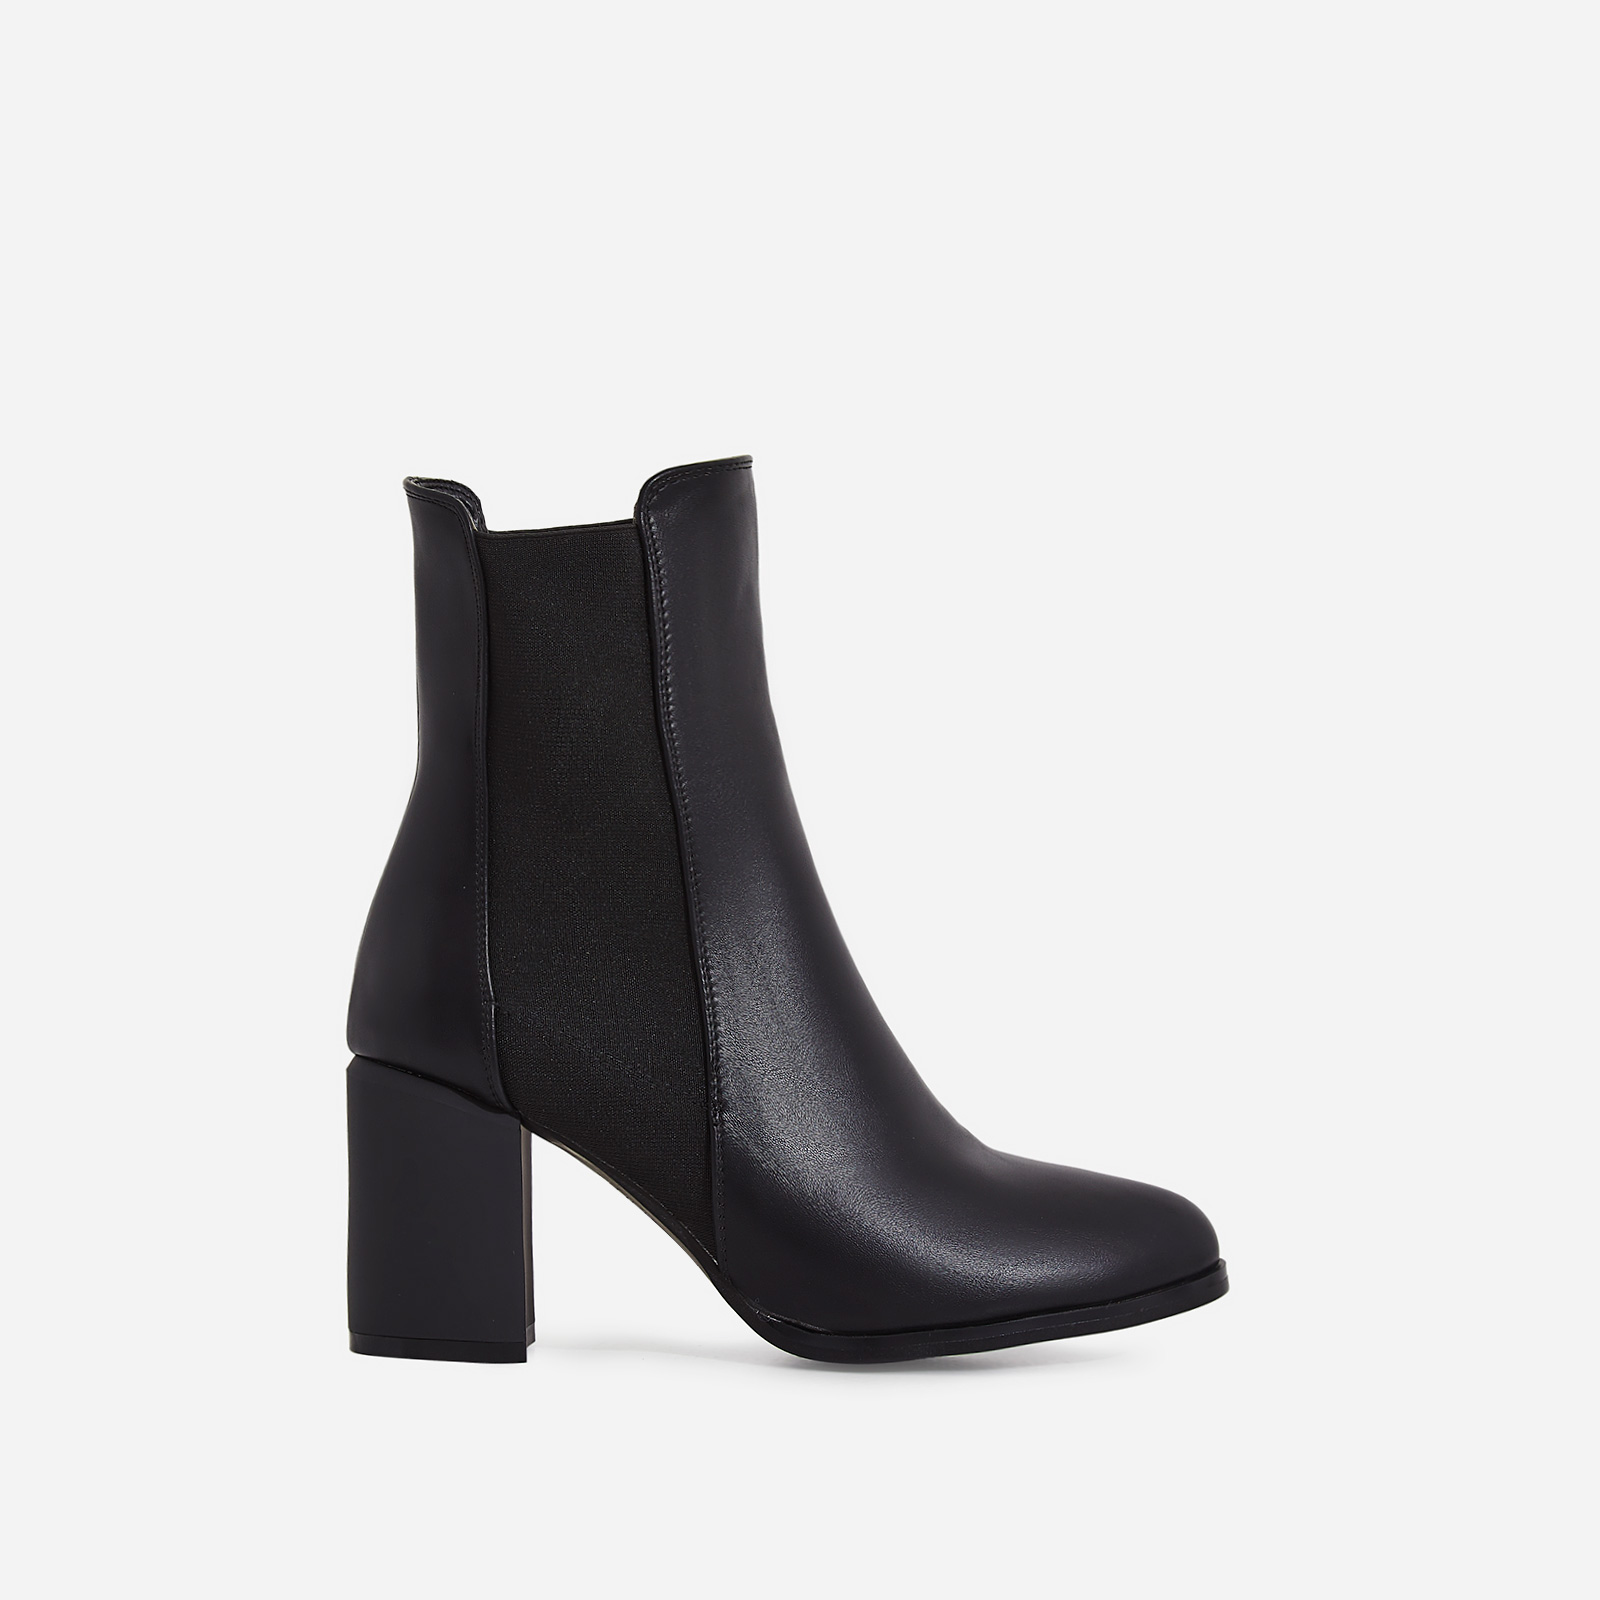 Runa Elasticated Block Heel Ankle Boot In Black Faux Leather